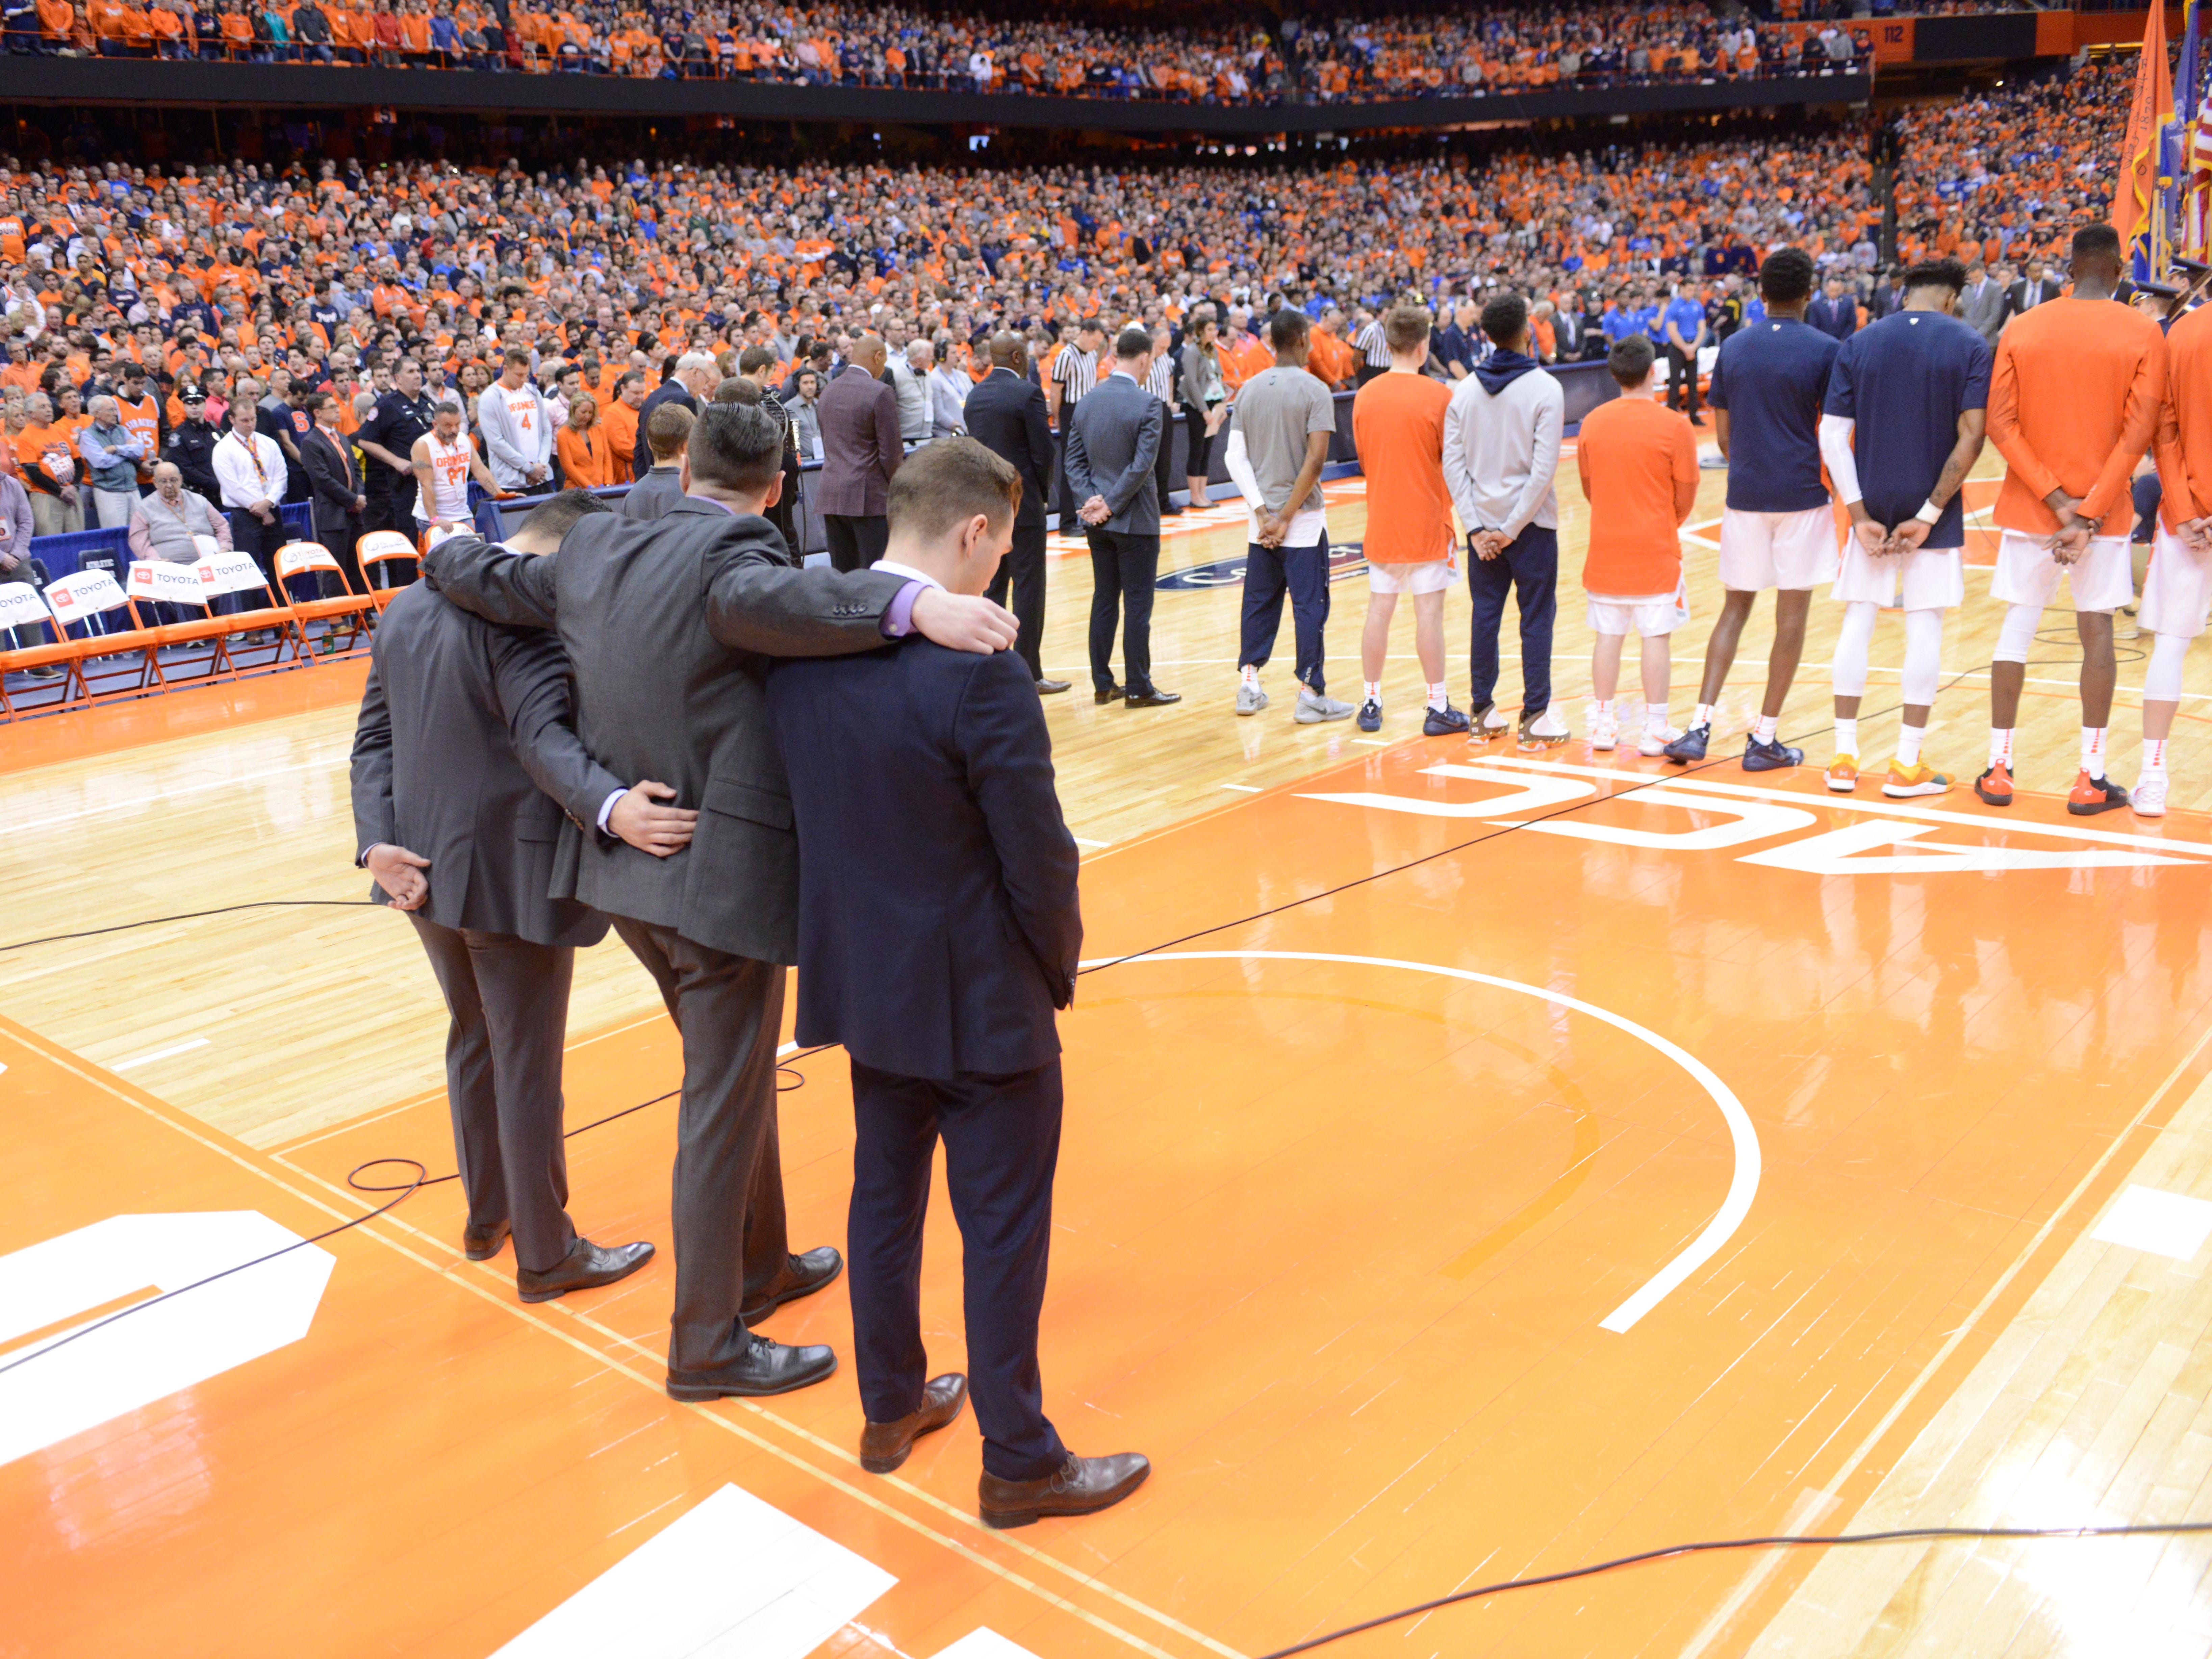 Feb 23, 2019; Syracuse, NY, USA; The Syracuse Orange team, fans and Duke Blue Devils pause for a moment of silence prior to a game at the Carrier Dome to remember Jorge Jimenez who died when accident struck by Syracuse Orange head coach Jim Boeheim's car last Wednesday night. Mandatory Credit: Mark Konezny-USA TODAY Sports